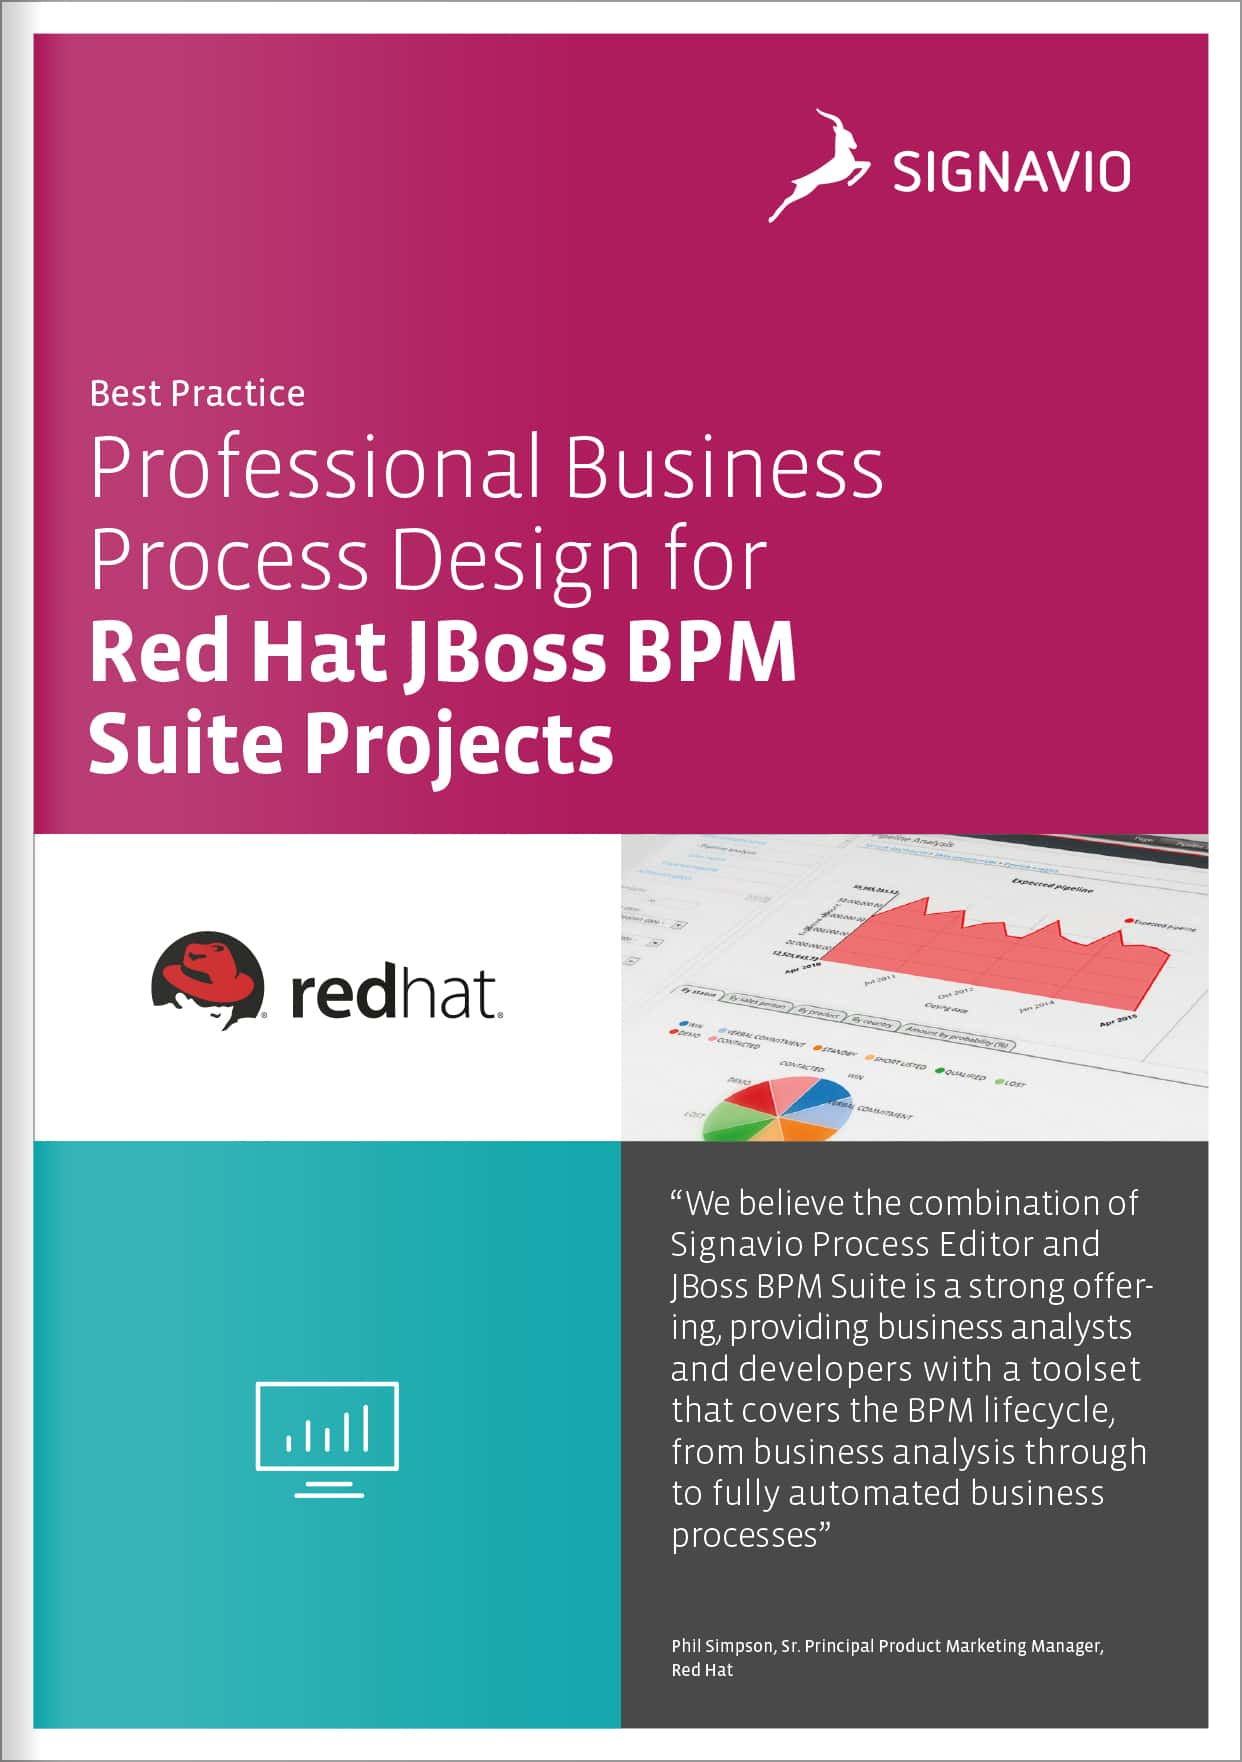 redhat-jboss-bpm-suite-projects-cover